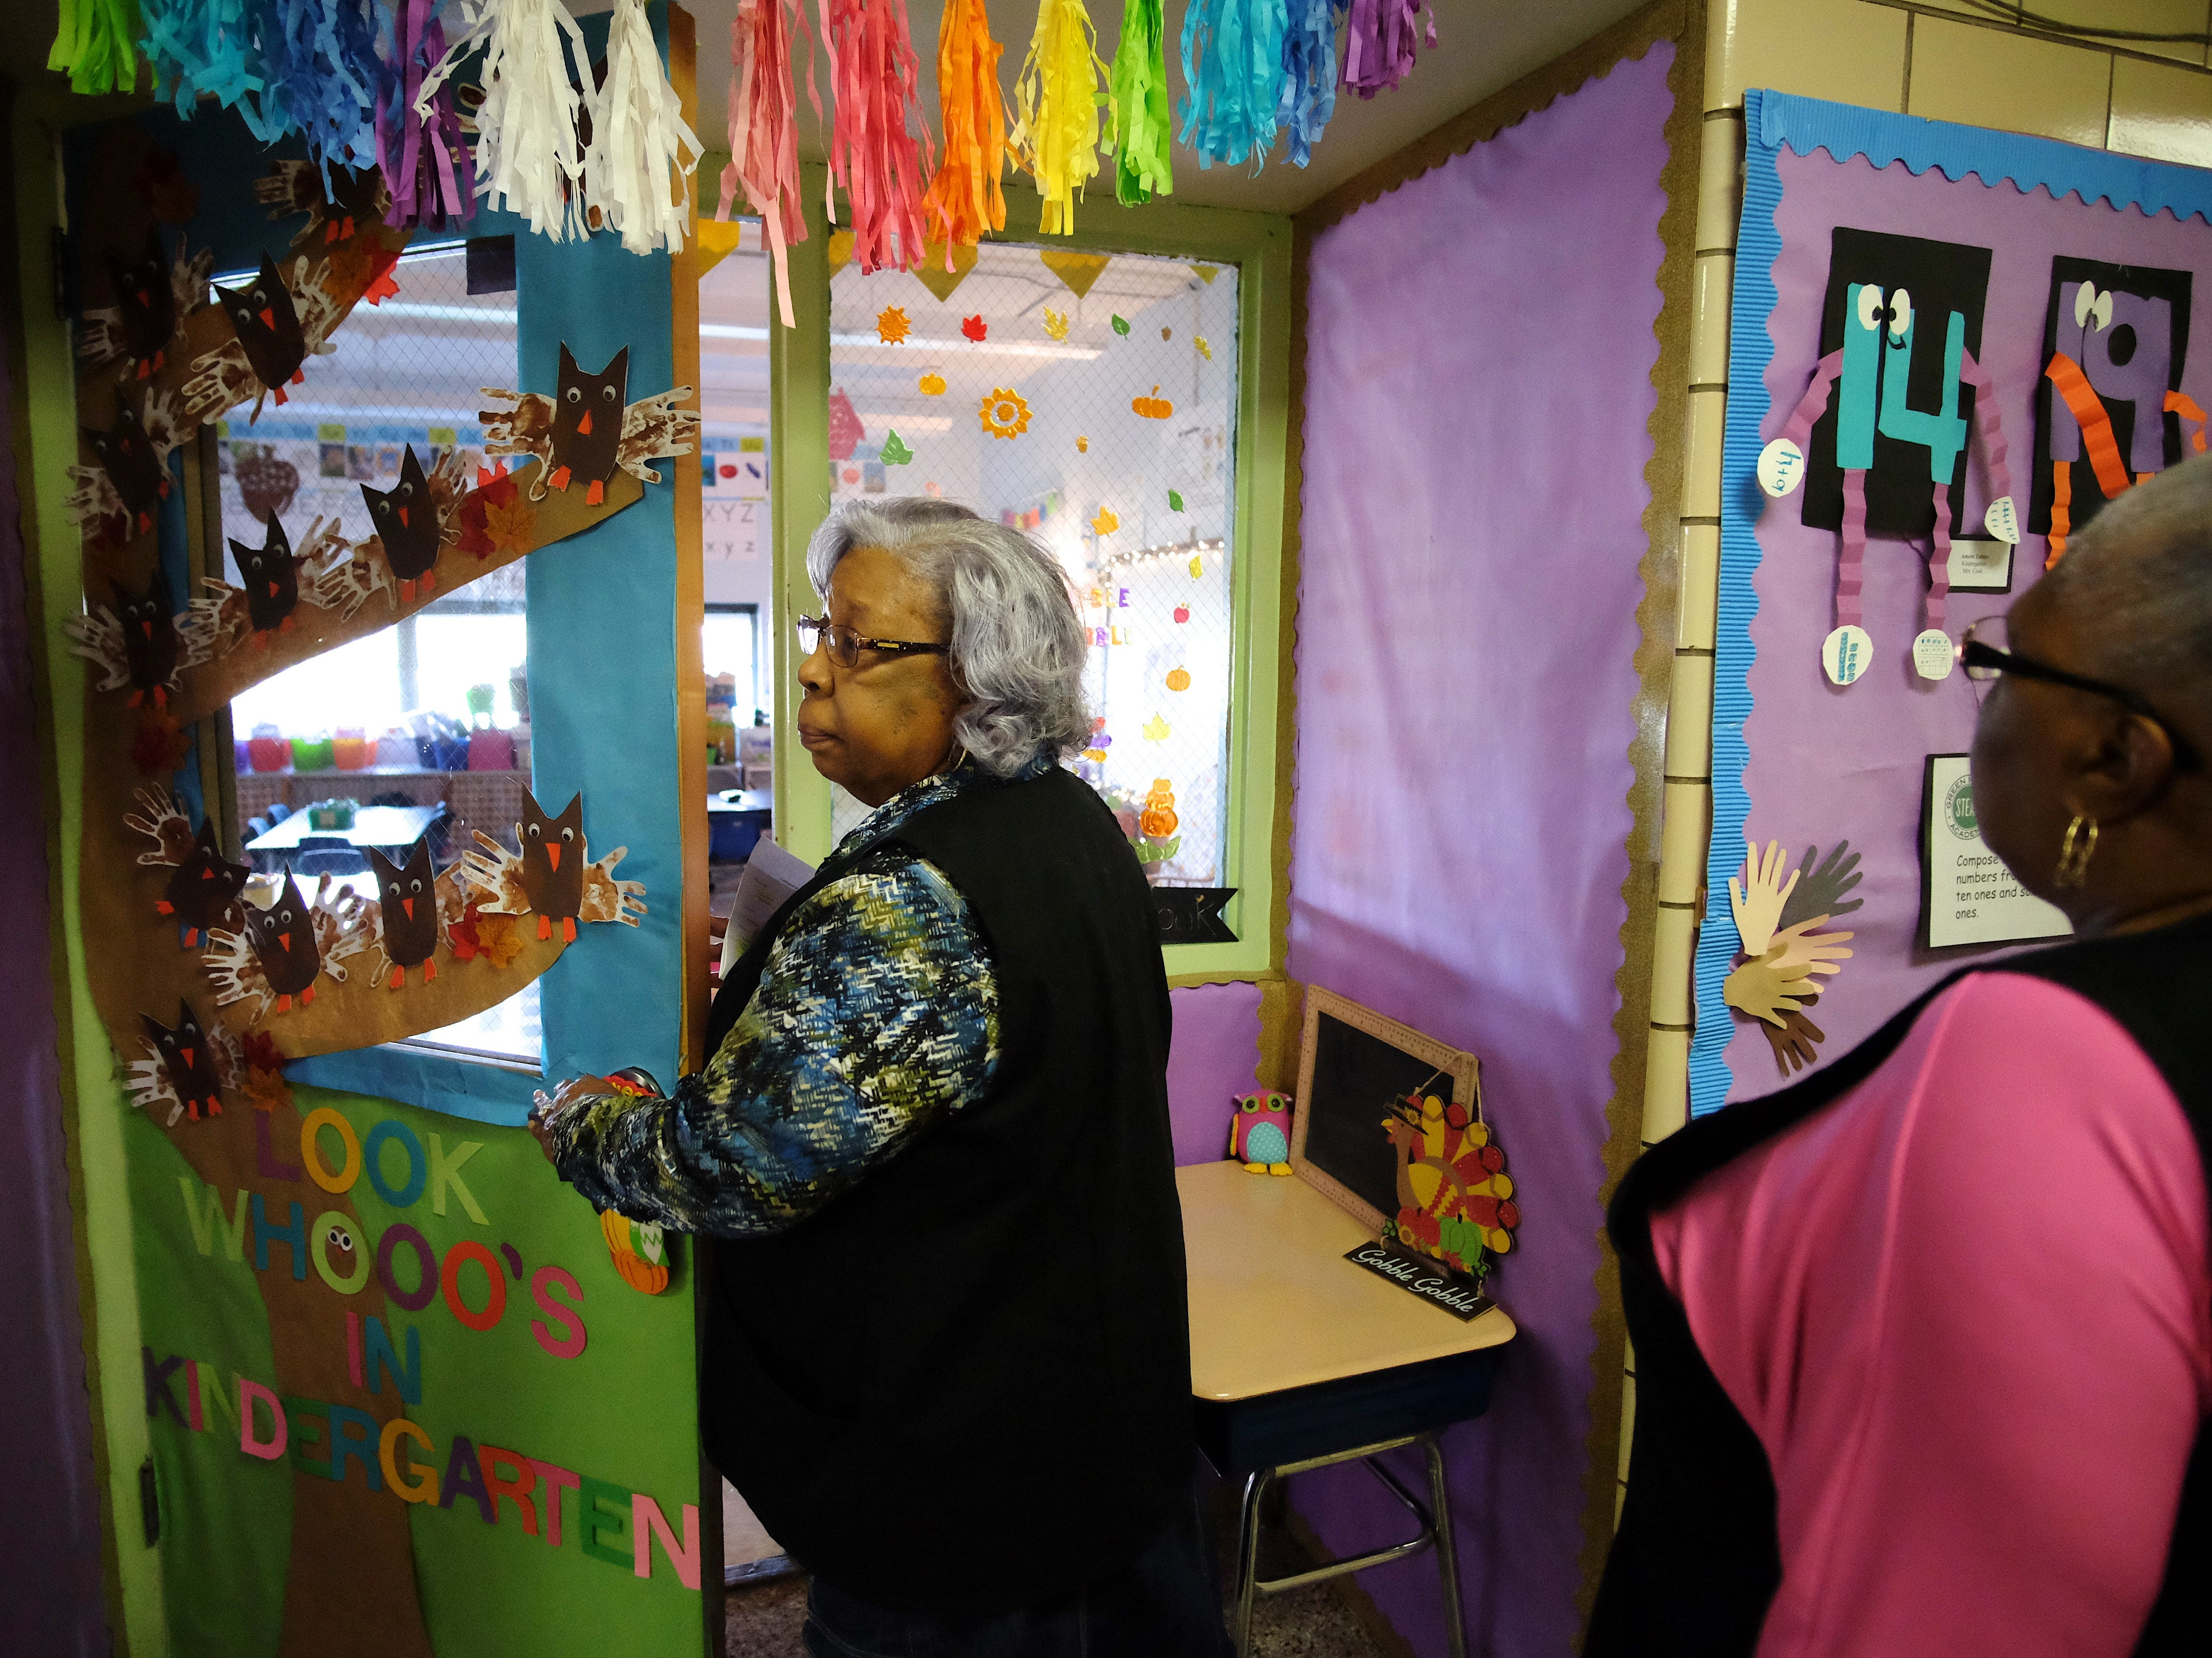 Foster Grandparents Hattie Crockett, left, and Lena Morrison enter a classroom at Green Magnet Academy on Wednesday, November 7, 2018 in Knoxville. Crockett and Morrison are sisters and they have been serving as Foster Grandparents for three years in Knoxville.